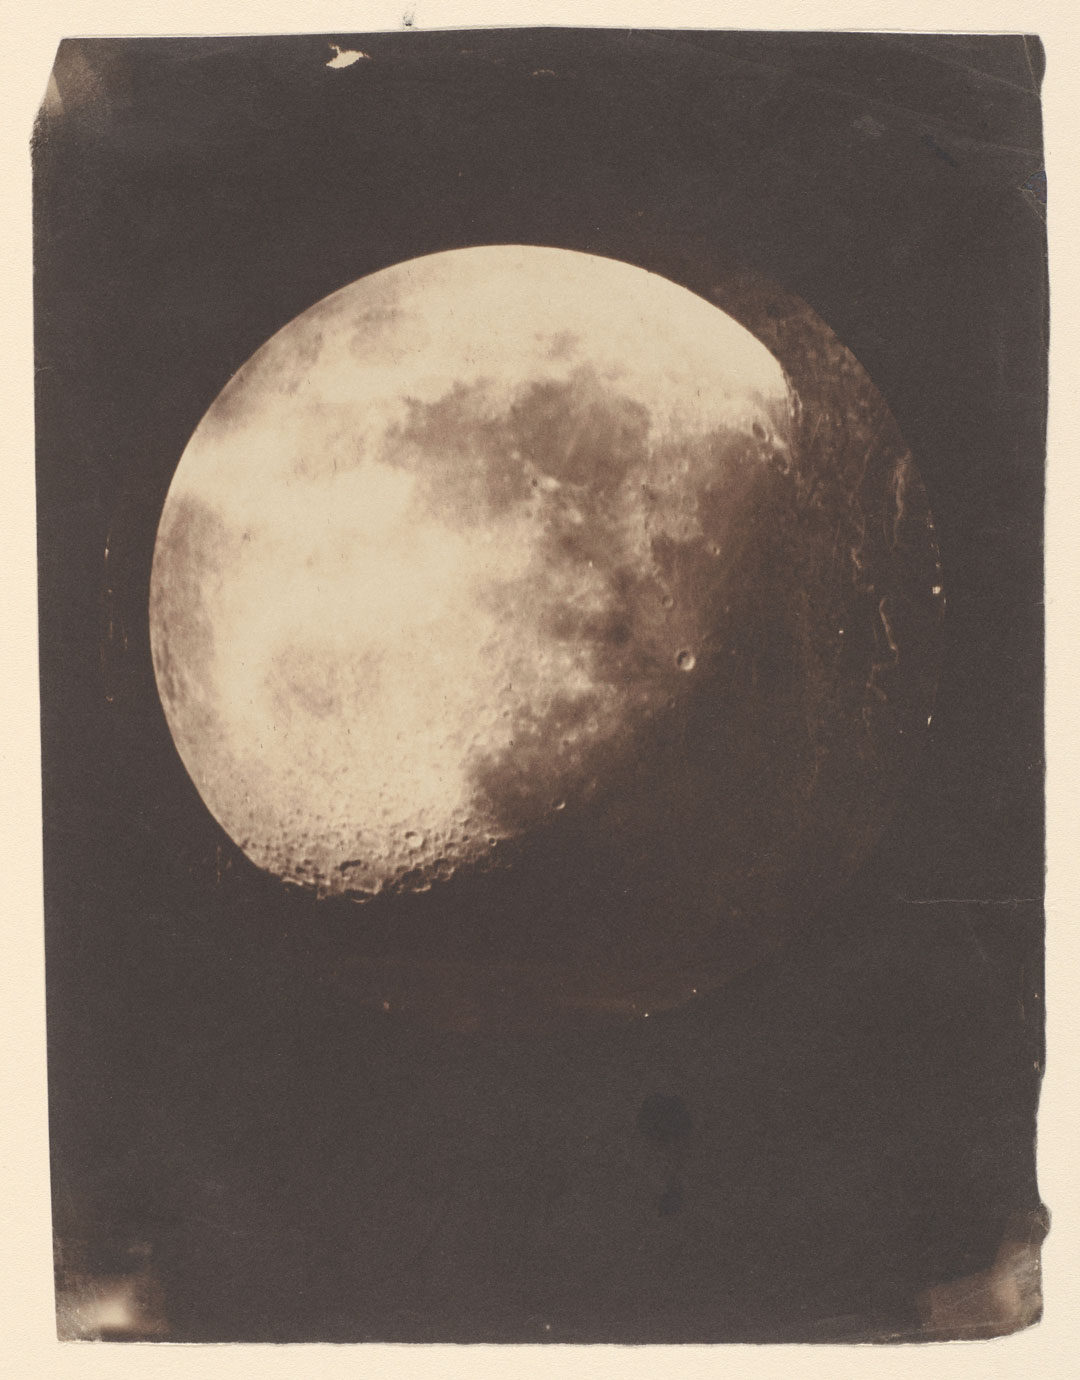 John Adams Whipple and James Black, The Moon, 1857–60, salted paper print made from a glass negative, 21.1 × 15.8 cm (8¼ × 6¼ in), copy of a daguerreotype made 193 at Harvard College Observatory, Cambridge, Massachusetts, Metropolitan Museum of Art, New York. Public domain. As reproduced in Sun and Moon